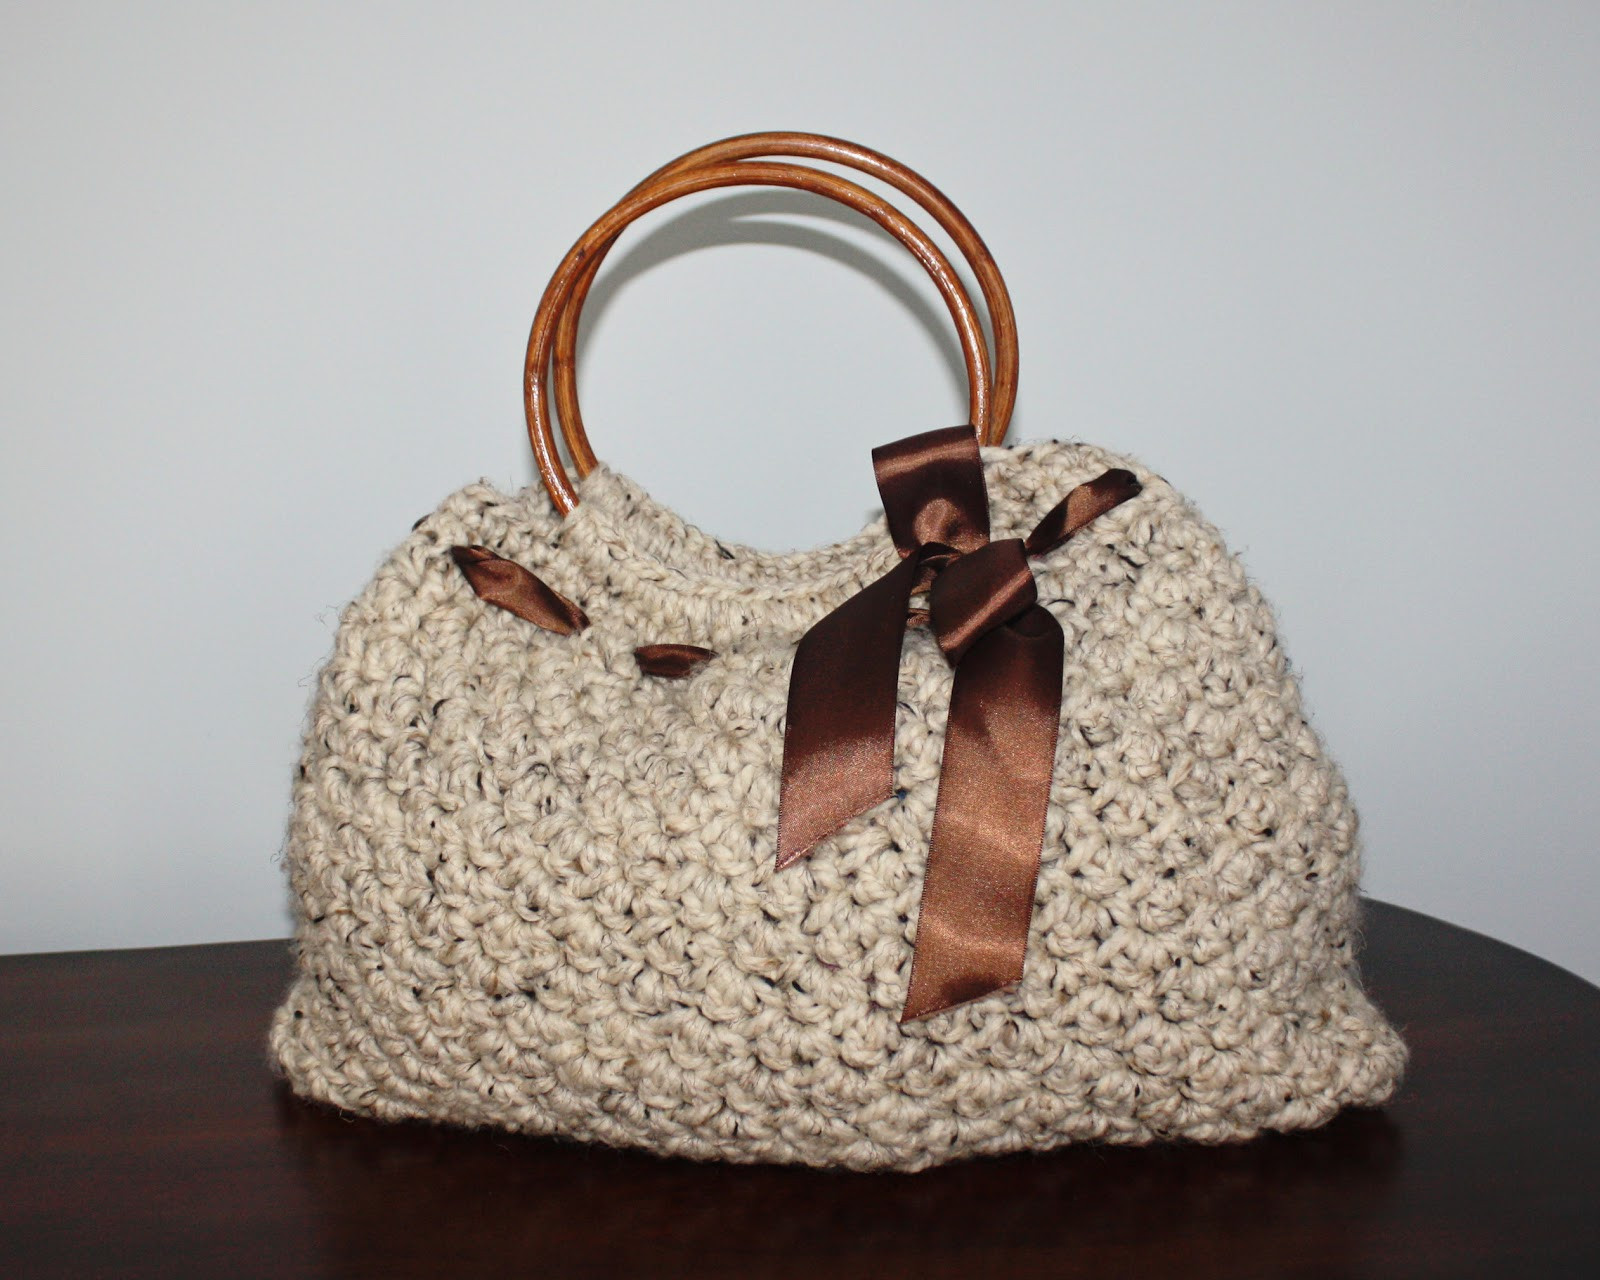 Crochet Purse Awesome Pretty Darn Adorable Crochet Free Patterns Of Top 48 Images Crochet Purse